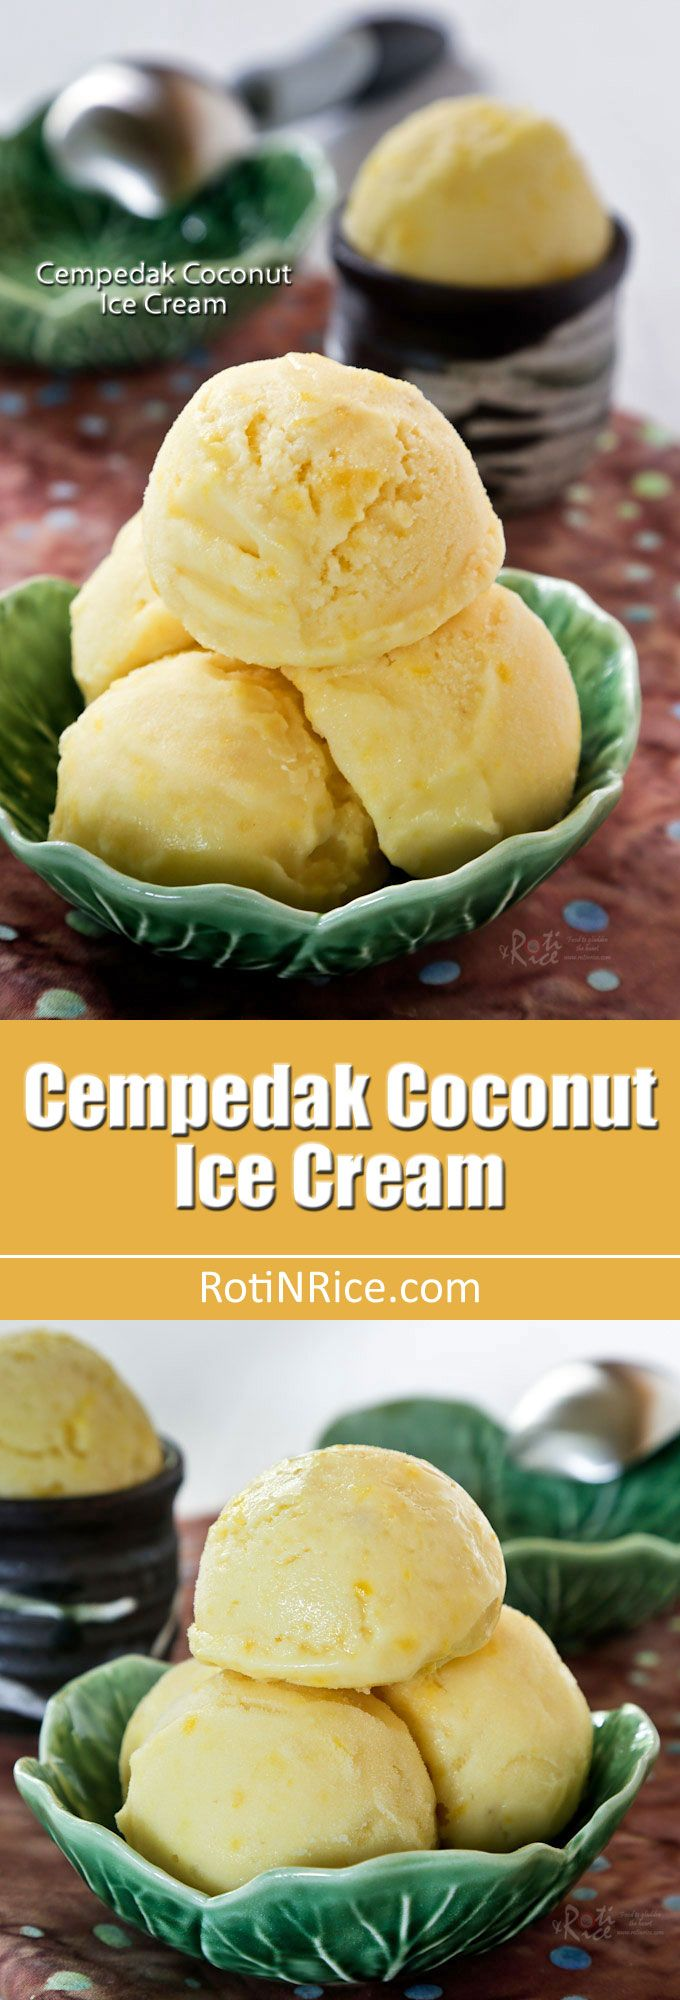 Cempedak Is A Fragrant Fruit With Sweet And Soft Flesh It Liquid Lokal Es Puter Durian Wonderful Combined Coconut Milk In This Creamy Ice Cream